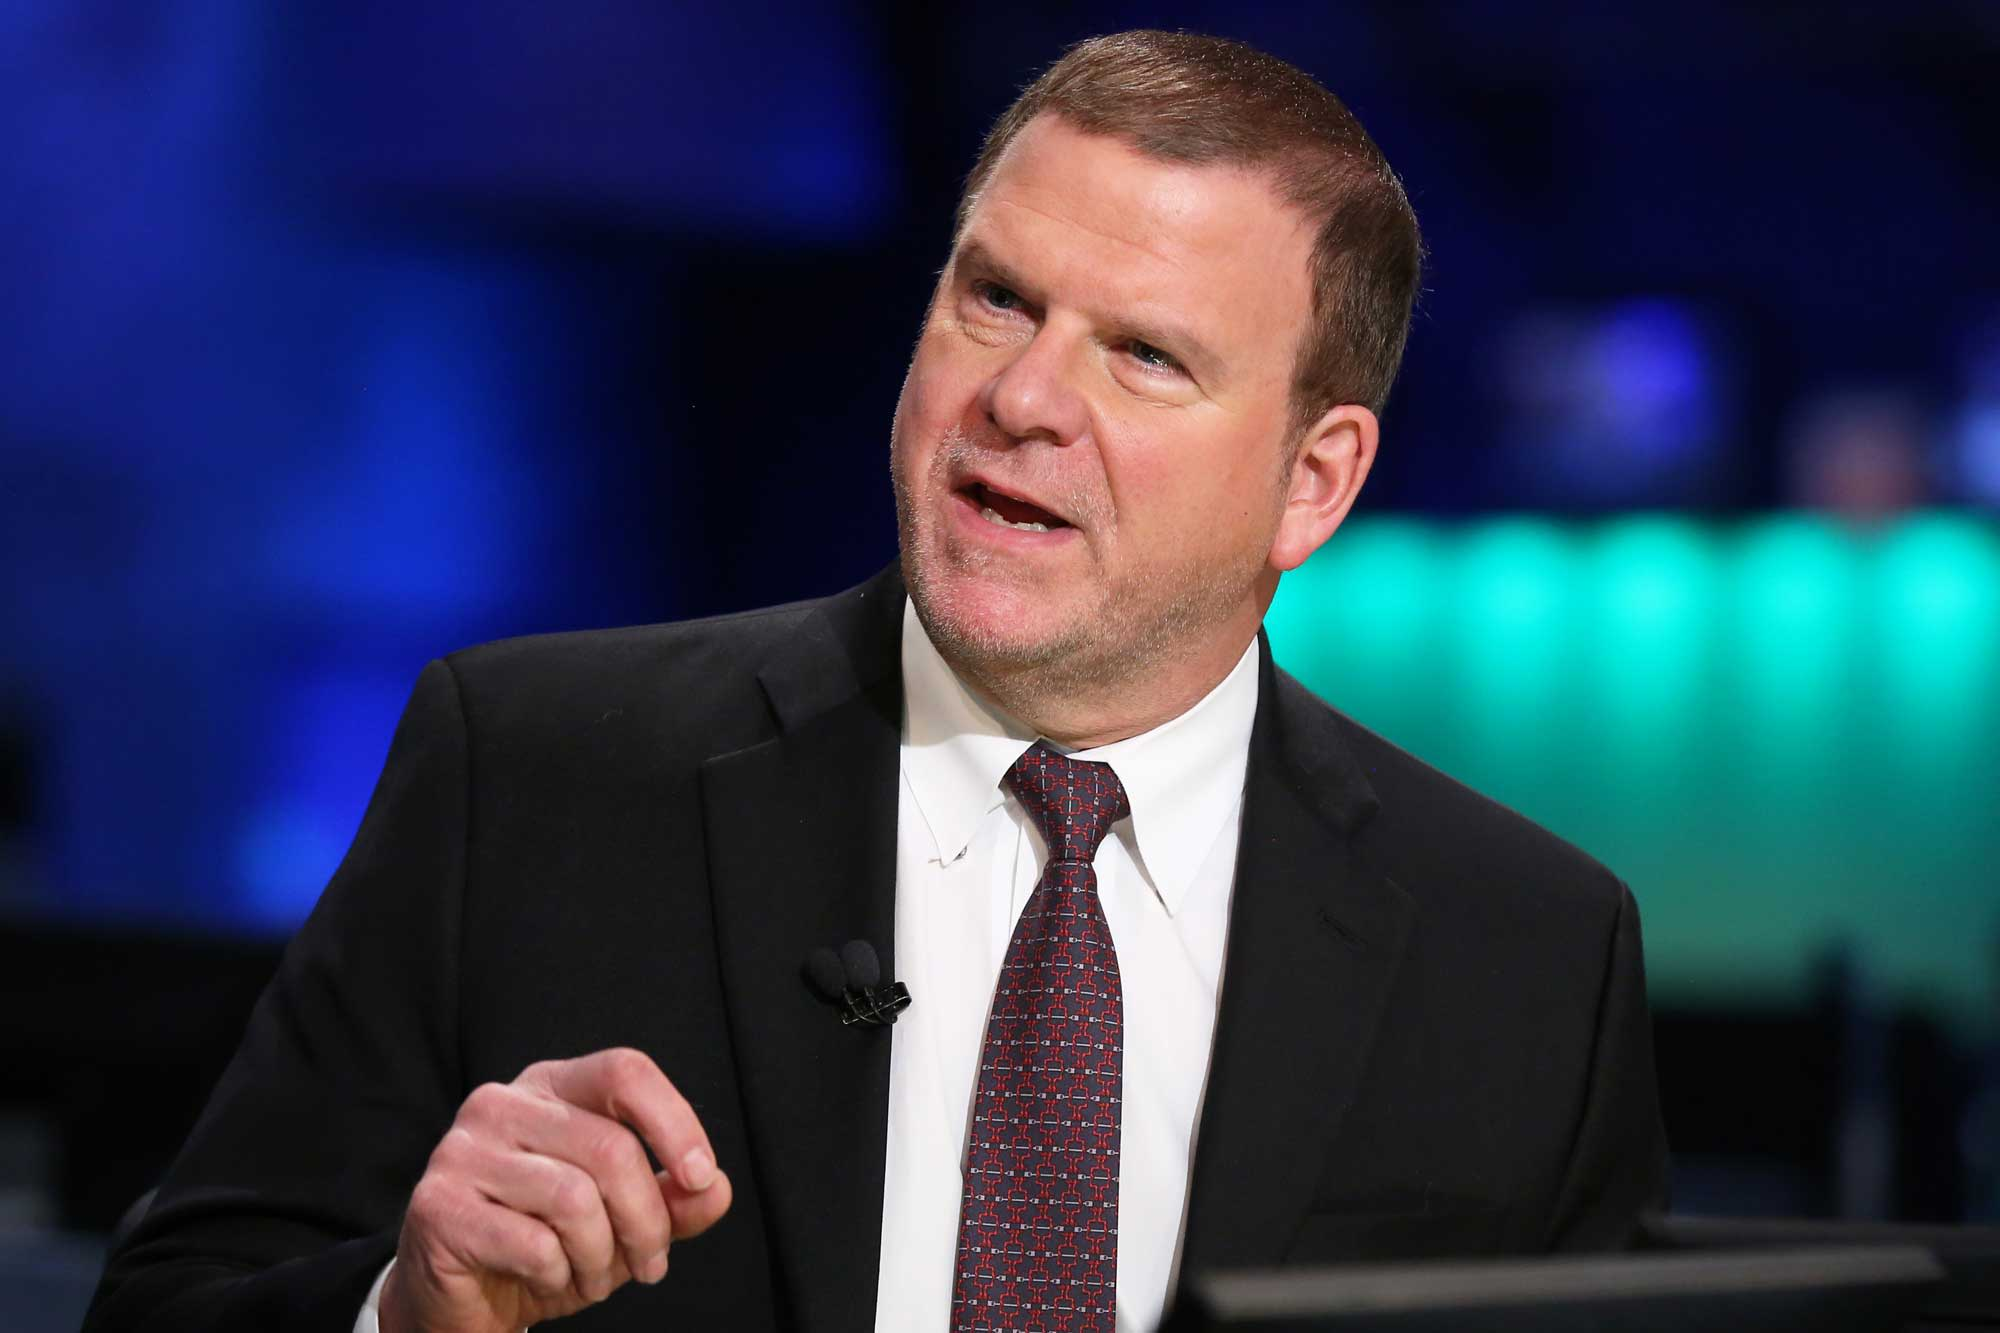 Tilman Fertitta says most of his Landry's restaurant brands will soon accept bitcoin as payment